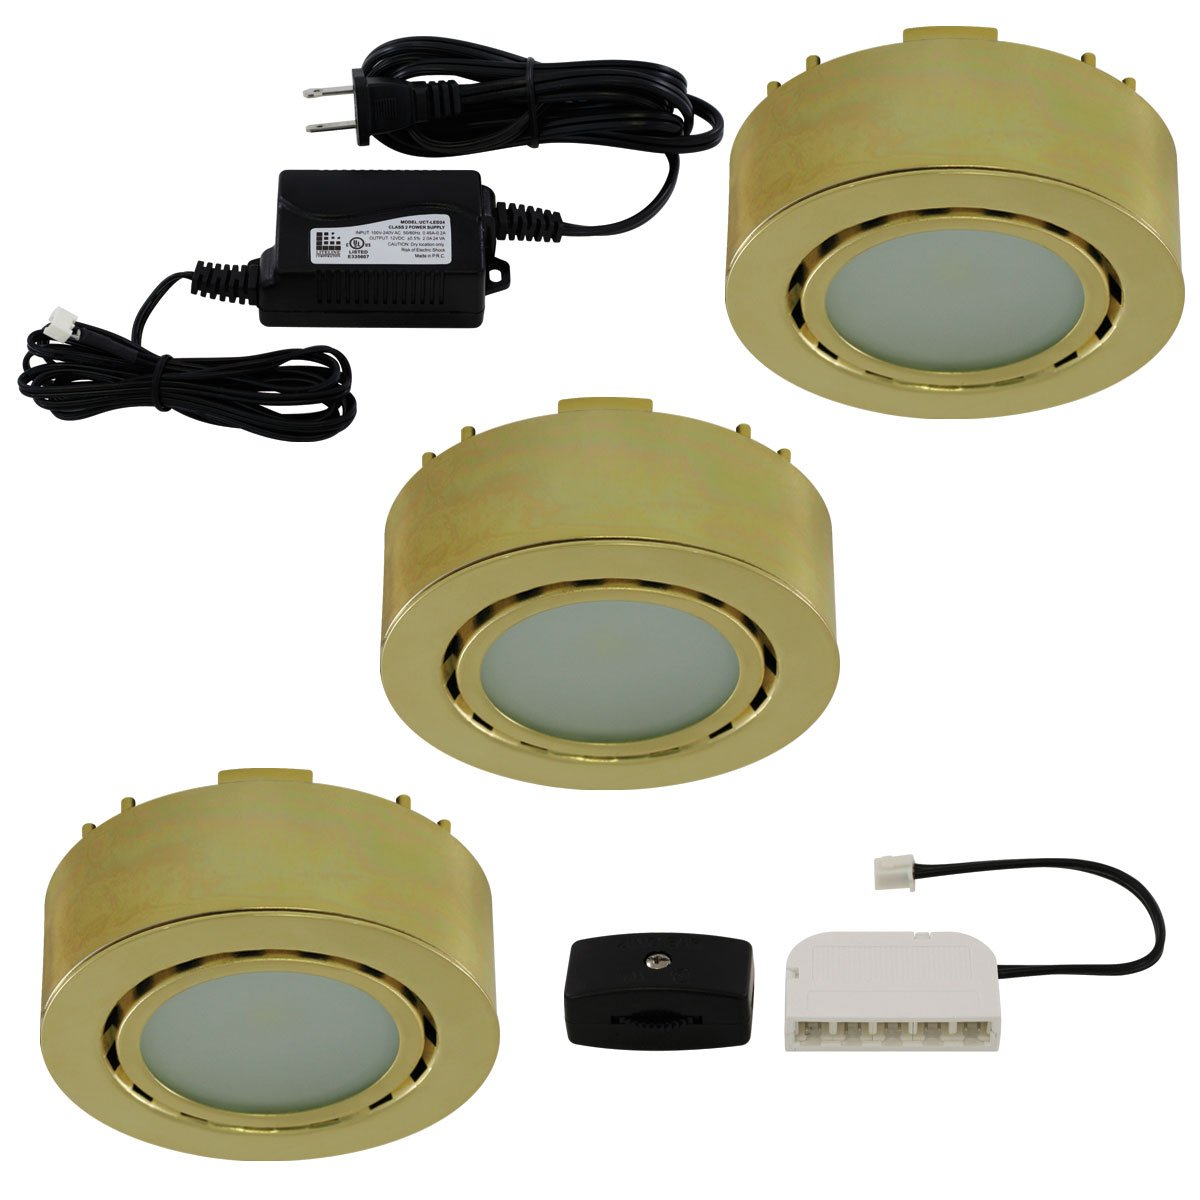 liteline ucp led3 pb led three light puck kit 12v polished brass